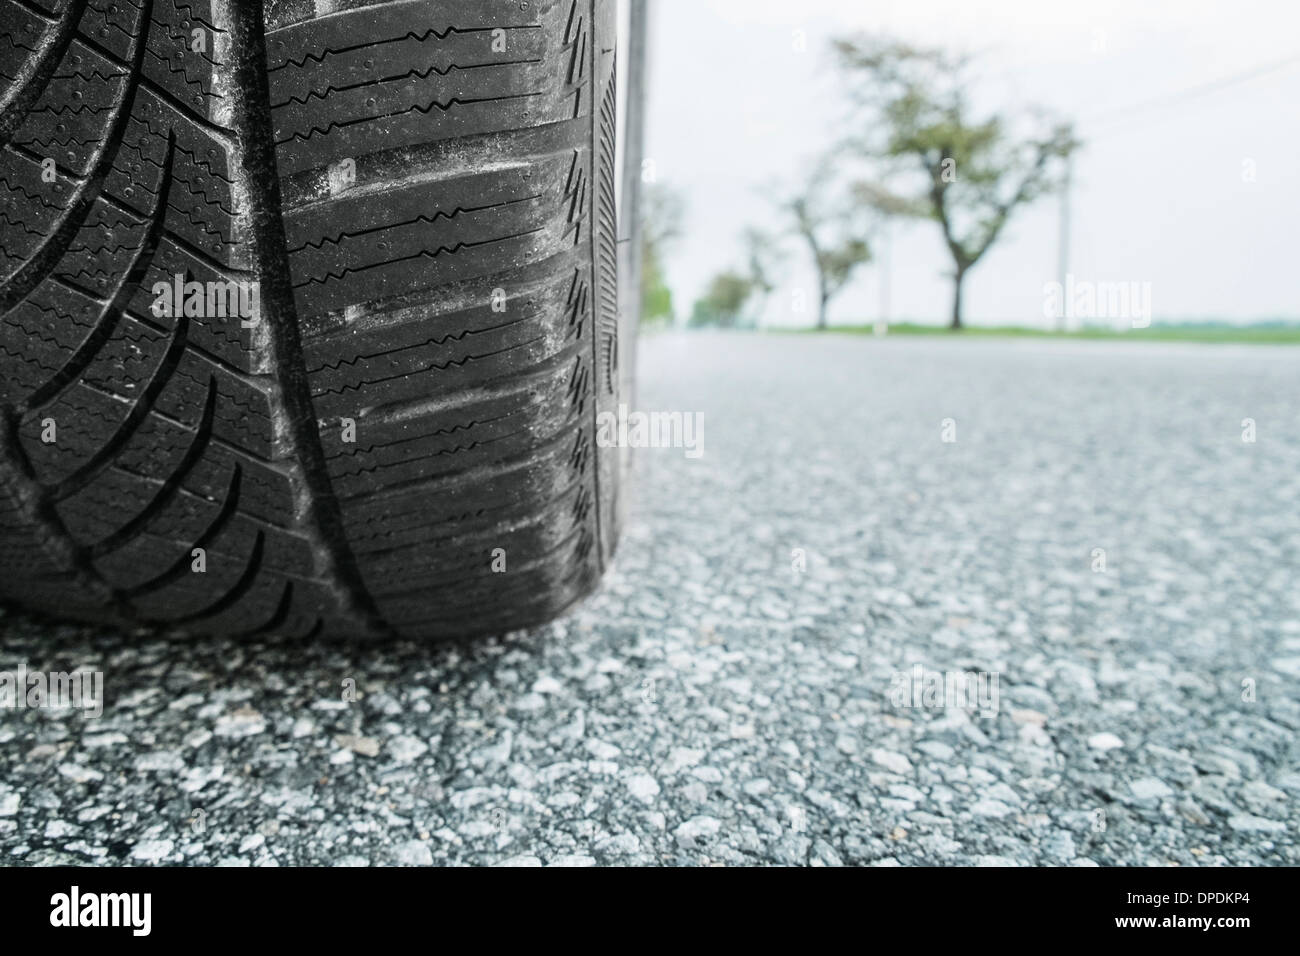 Car tire on road, close up - Stock Image